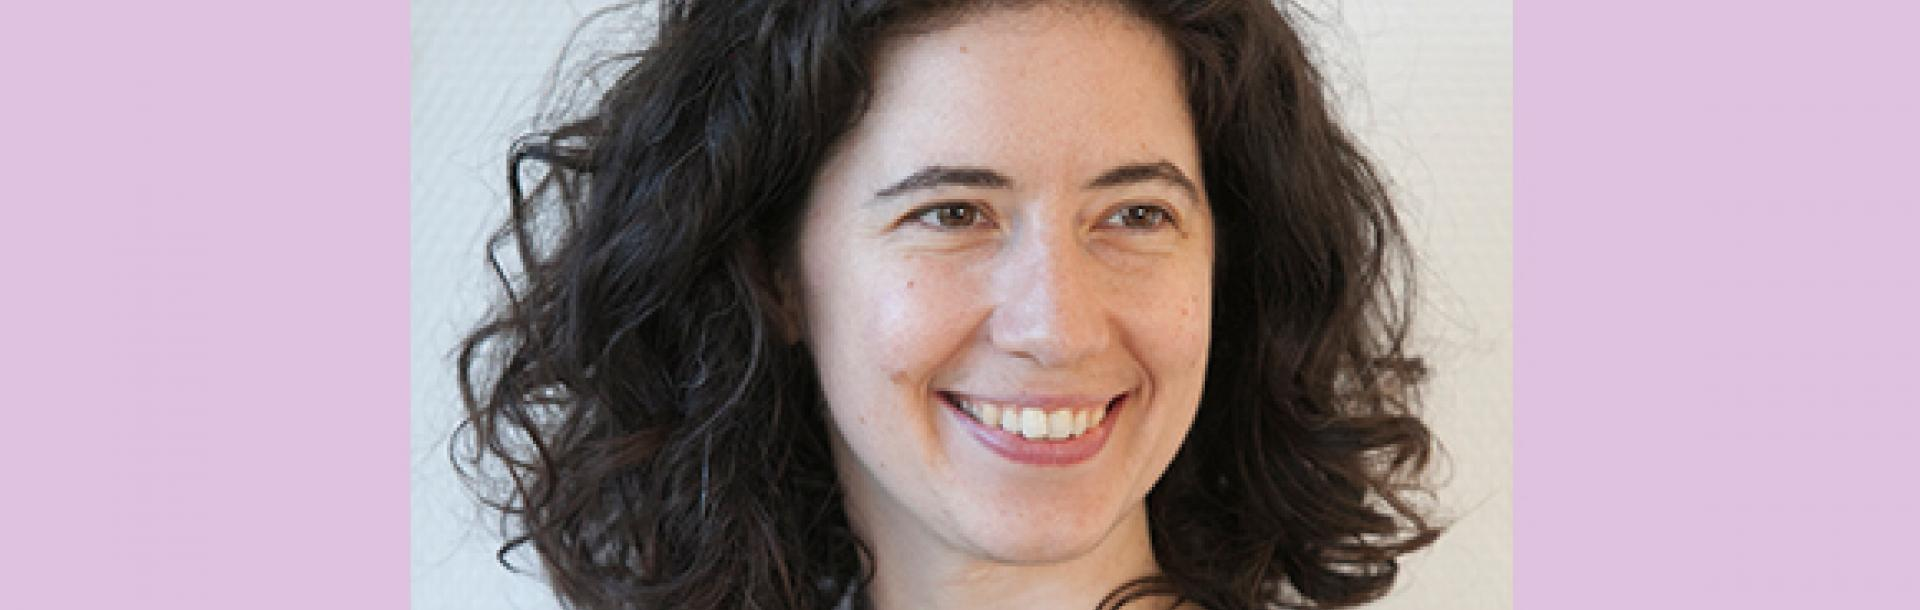 Congratulations to Dr. Hadas Soifer who has been awarded a prestigious Quantum Science and Technology Fellowship